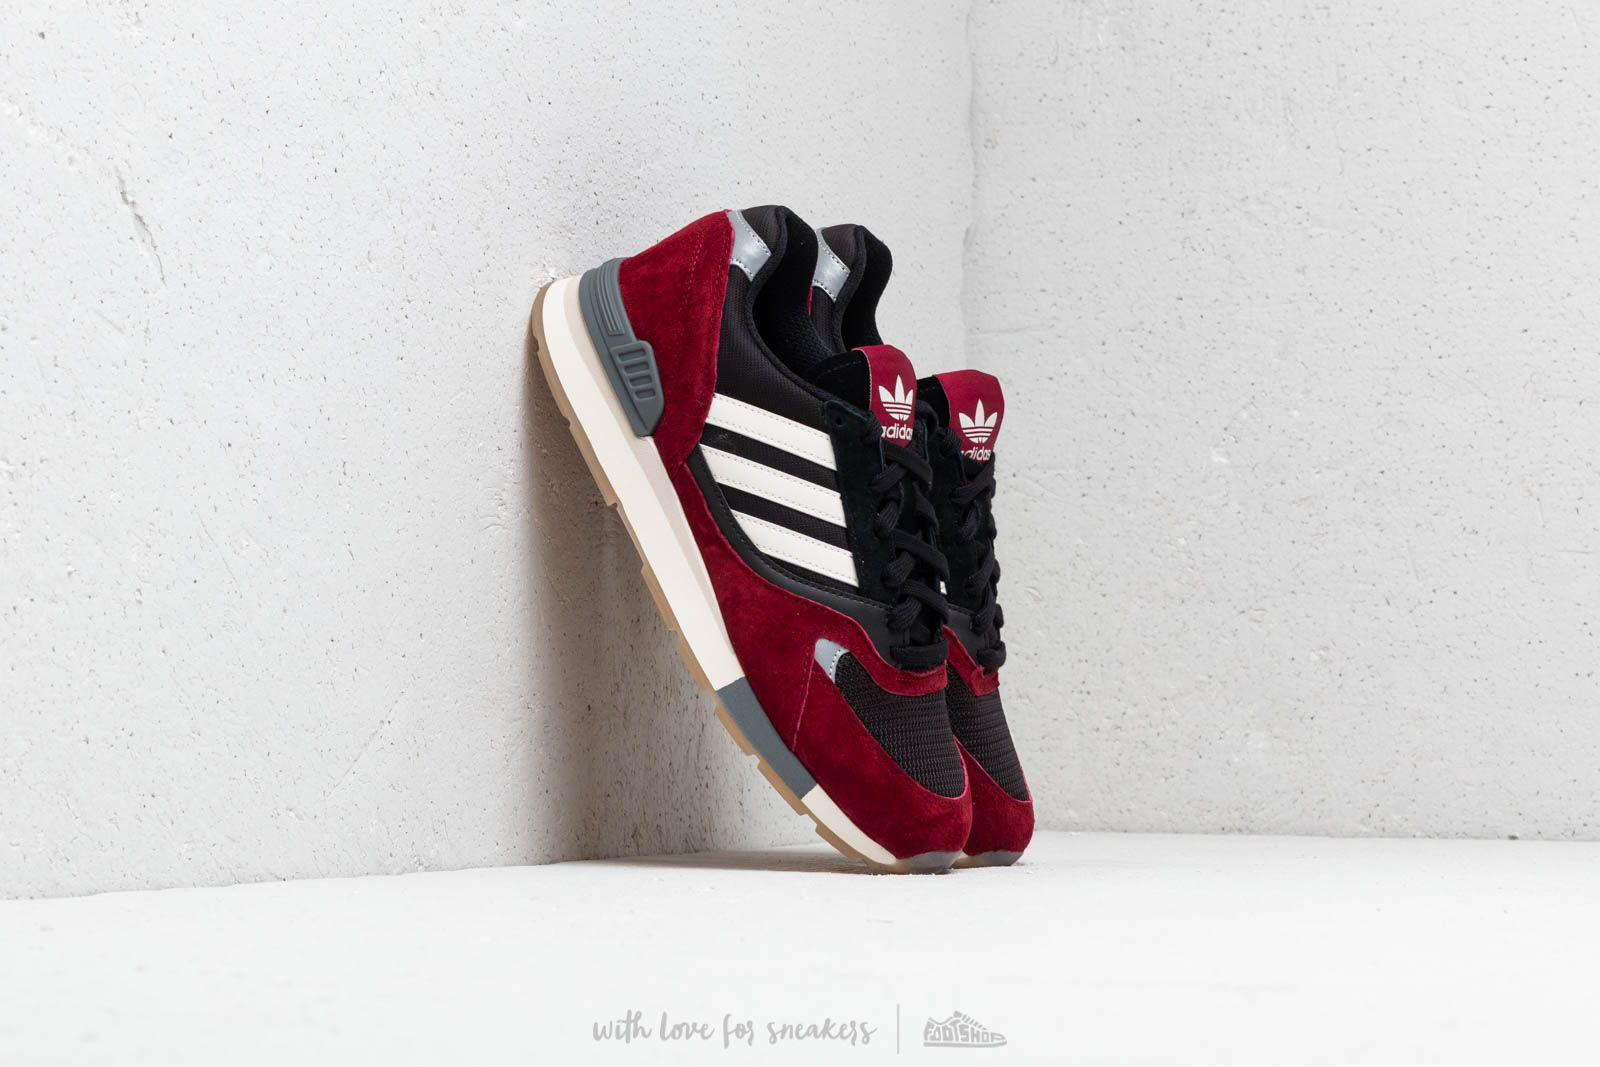 Lyst - adidas Originals Adidas Quesence Collegiate Burgundy  Chalk ... 441f1ebff